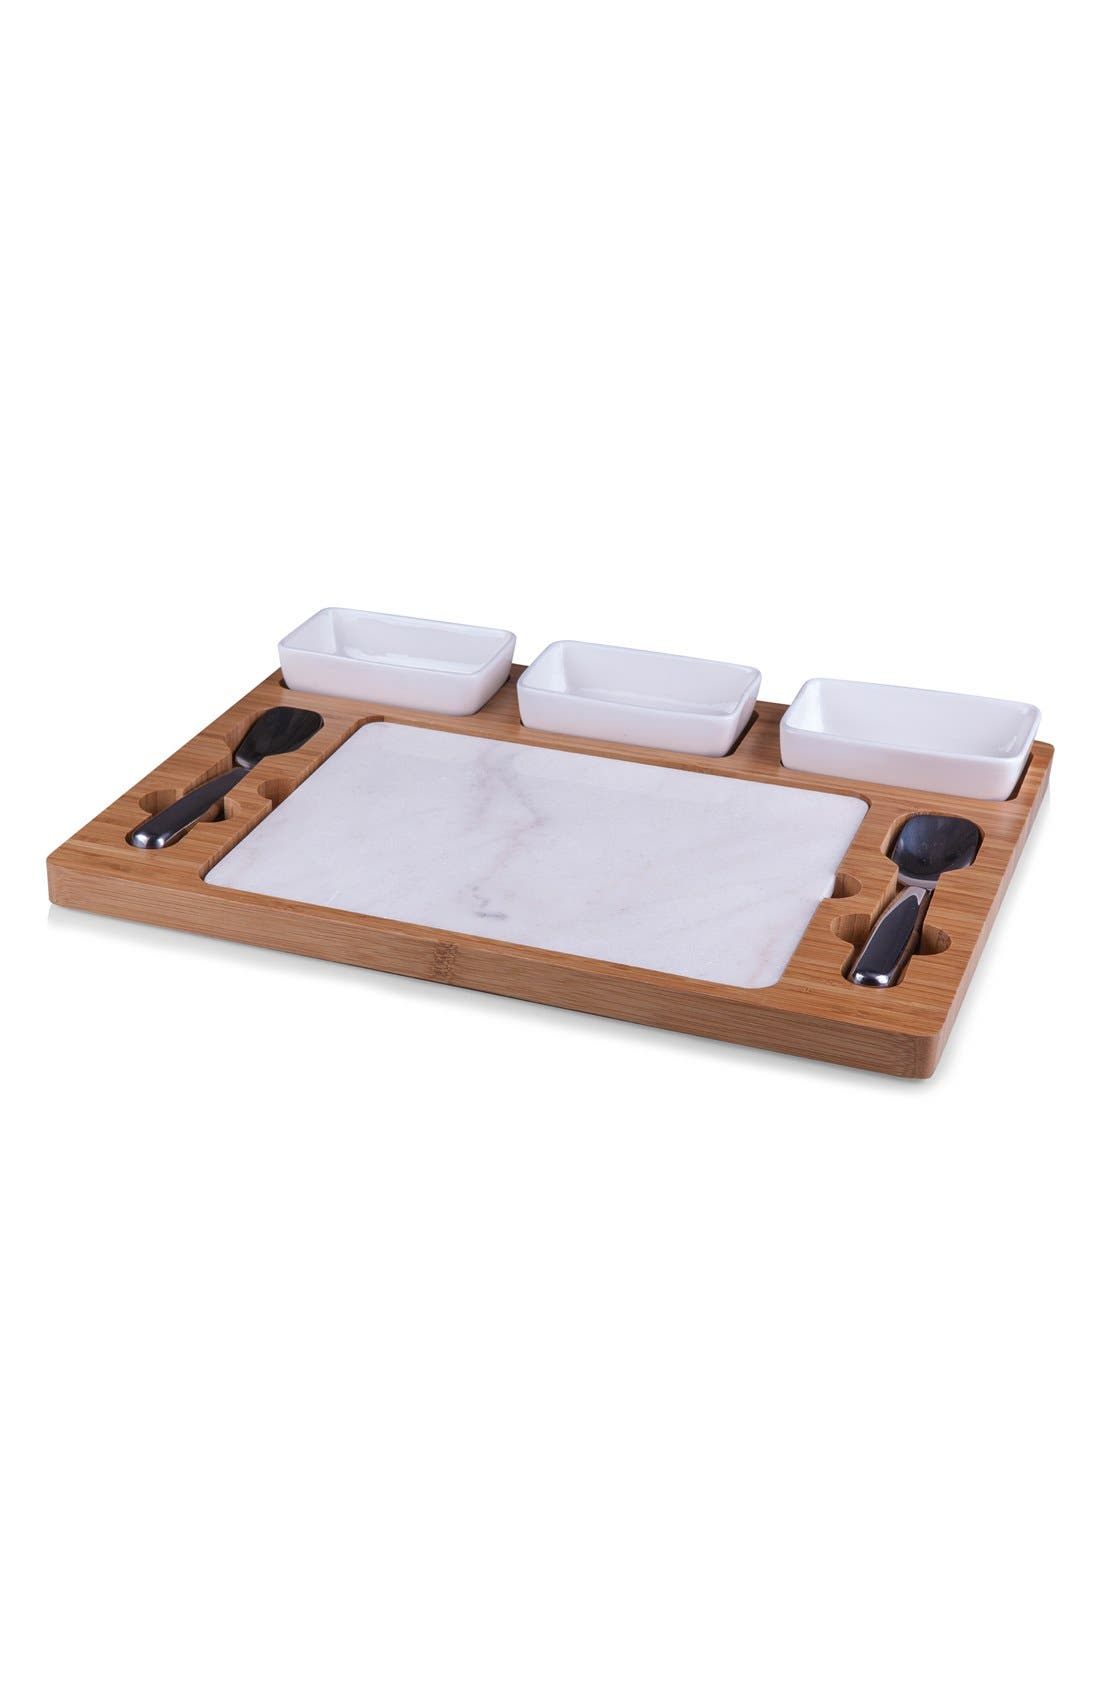 'Parlor' Ice Cream Mixing Set,                             Alternate thumbnail 5, color,                             BROWN